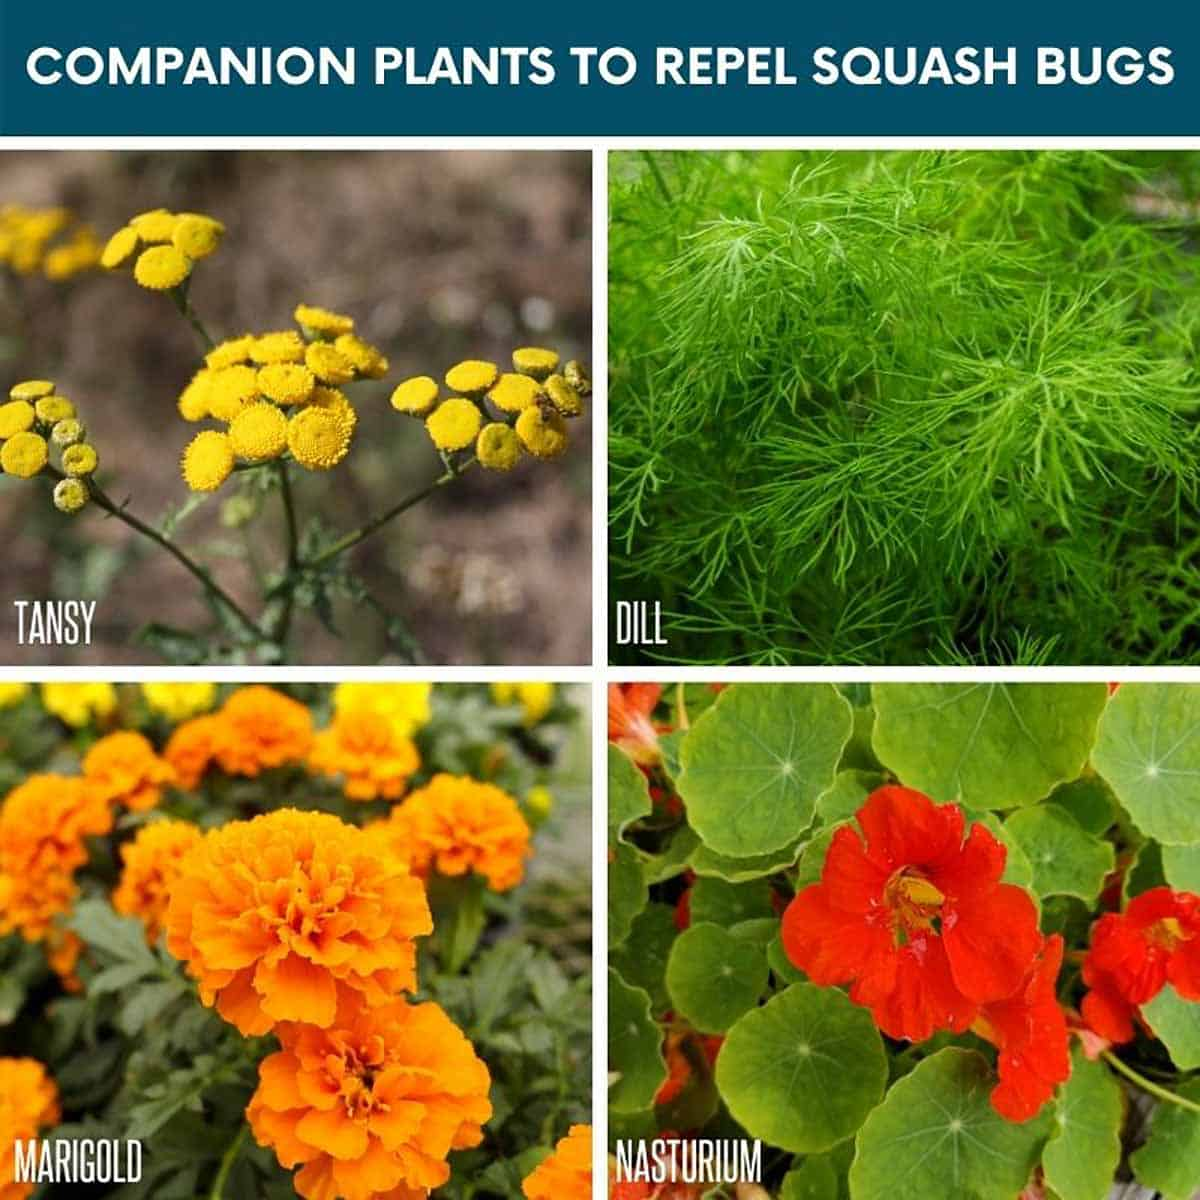 A divided image shows various companion plants to repel squash bugs: Tansy, dill, marigold, nasturtium